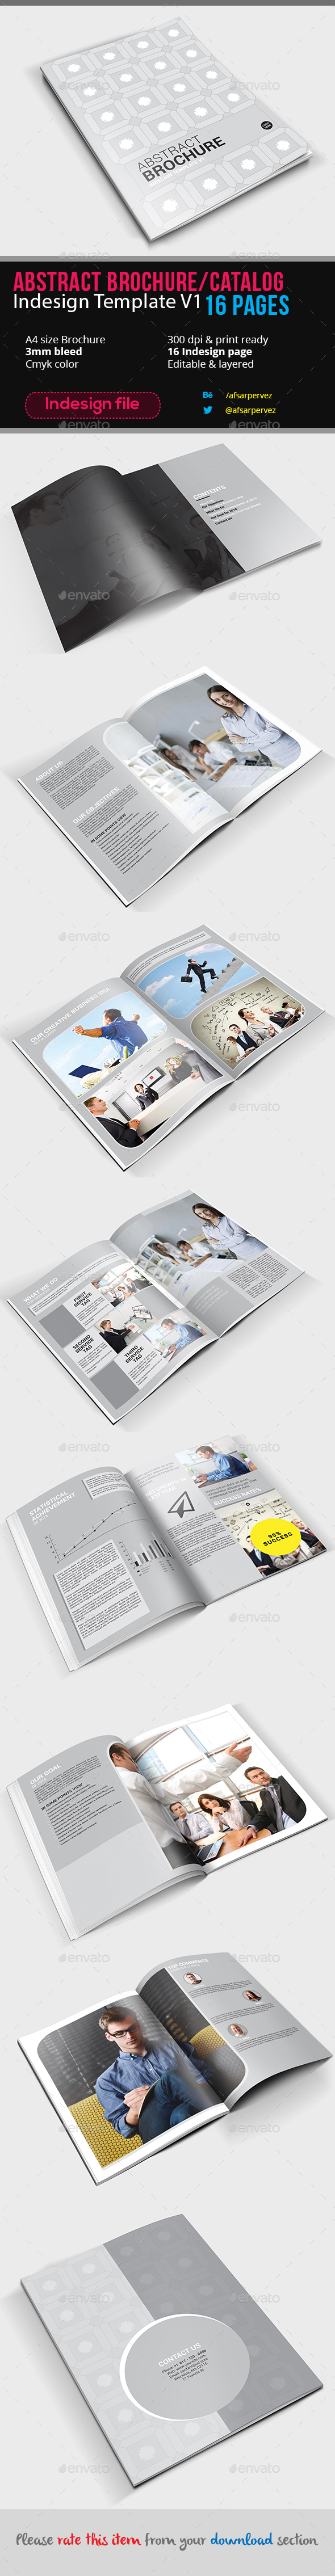 Abstract Brochure Catalog Indesign Template V1 – 16 Pages - Corporate Brochures